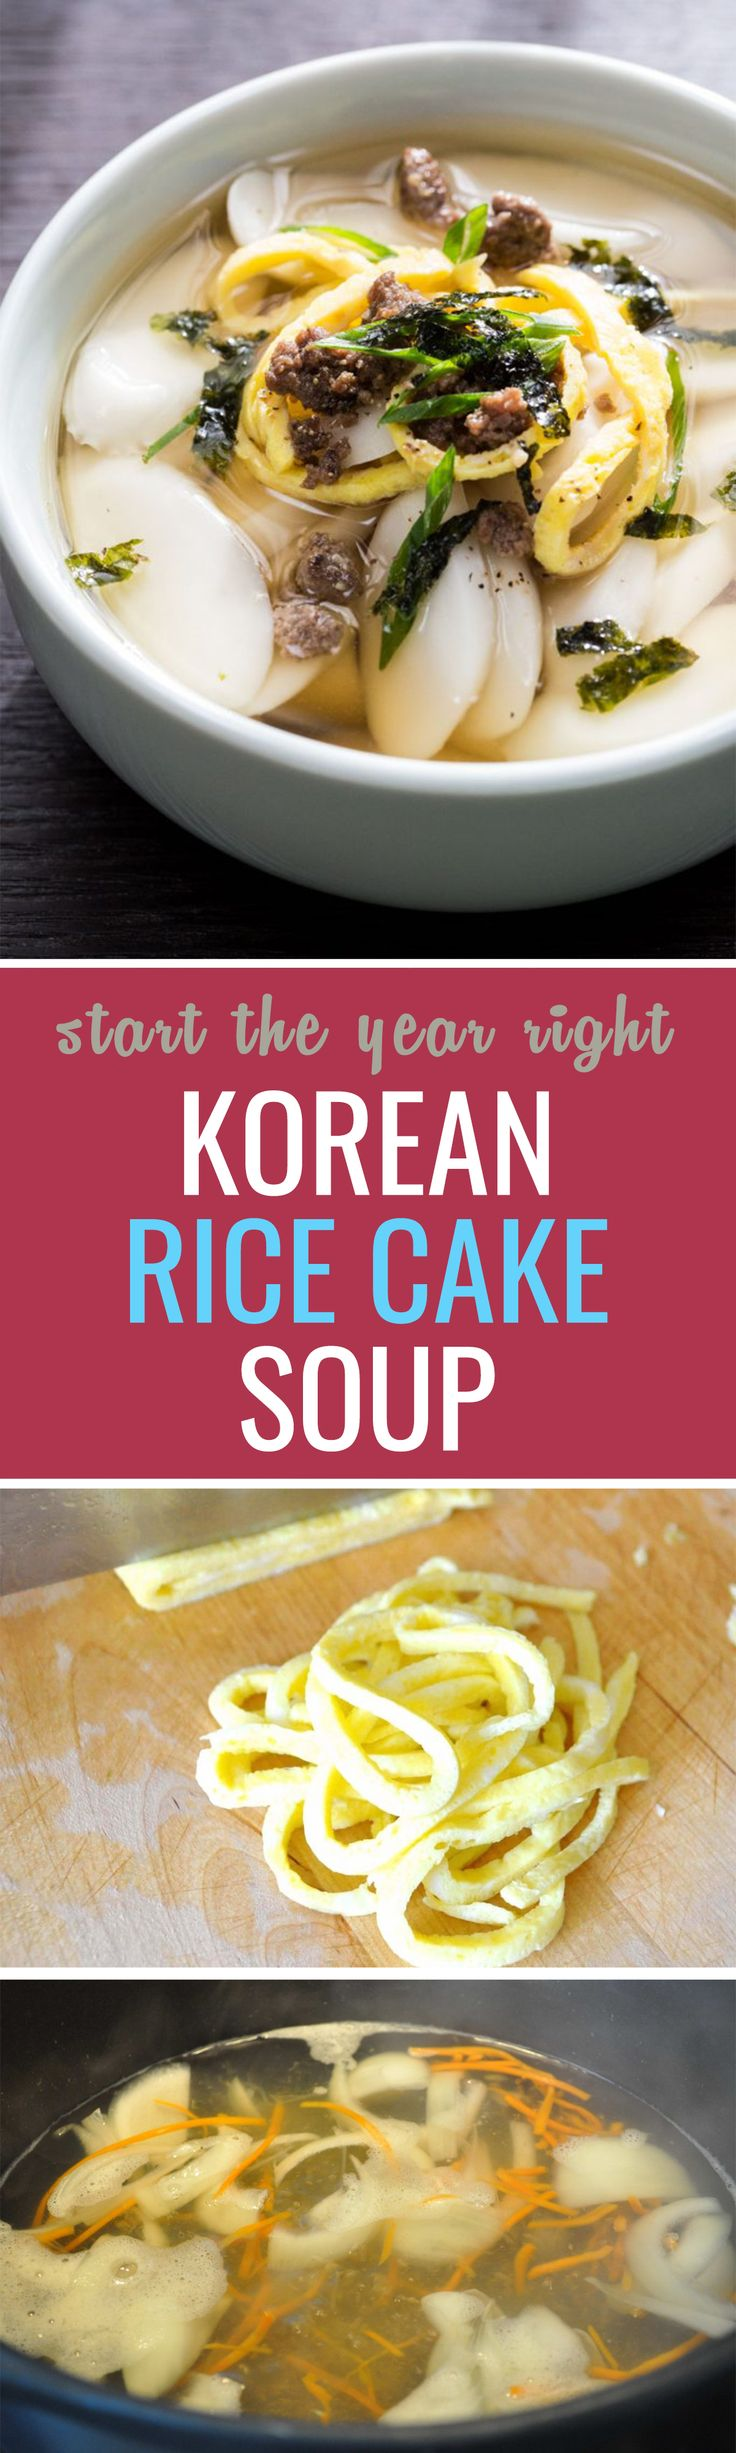 HAPPY NEW YEAR! Start 2018 with this traditional Korean new years rice cake soup!